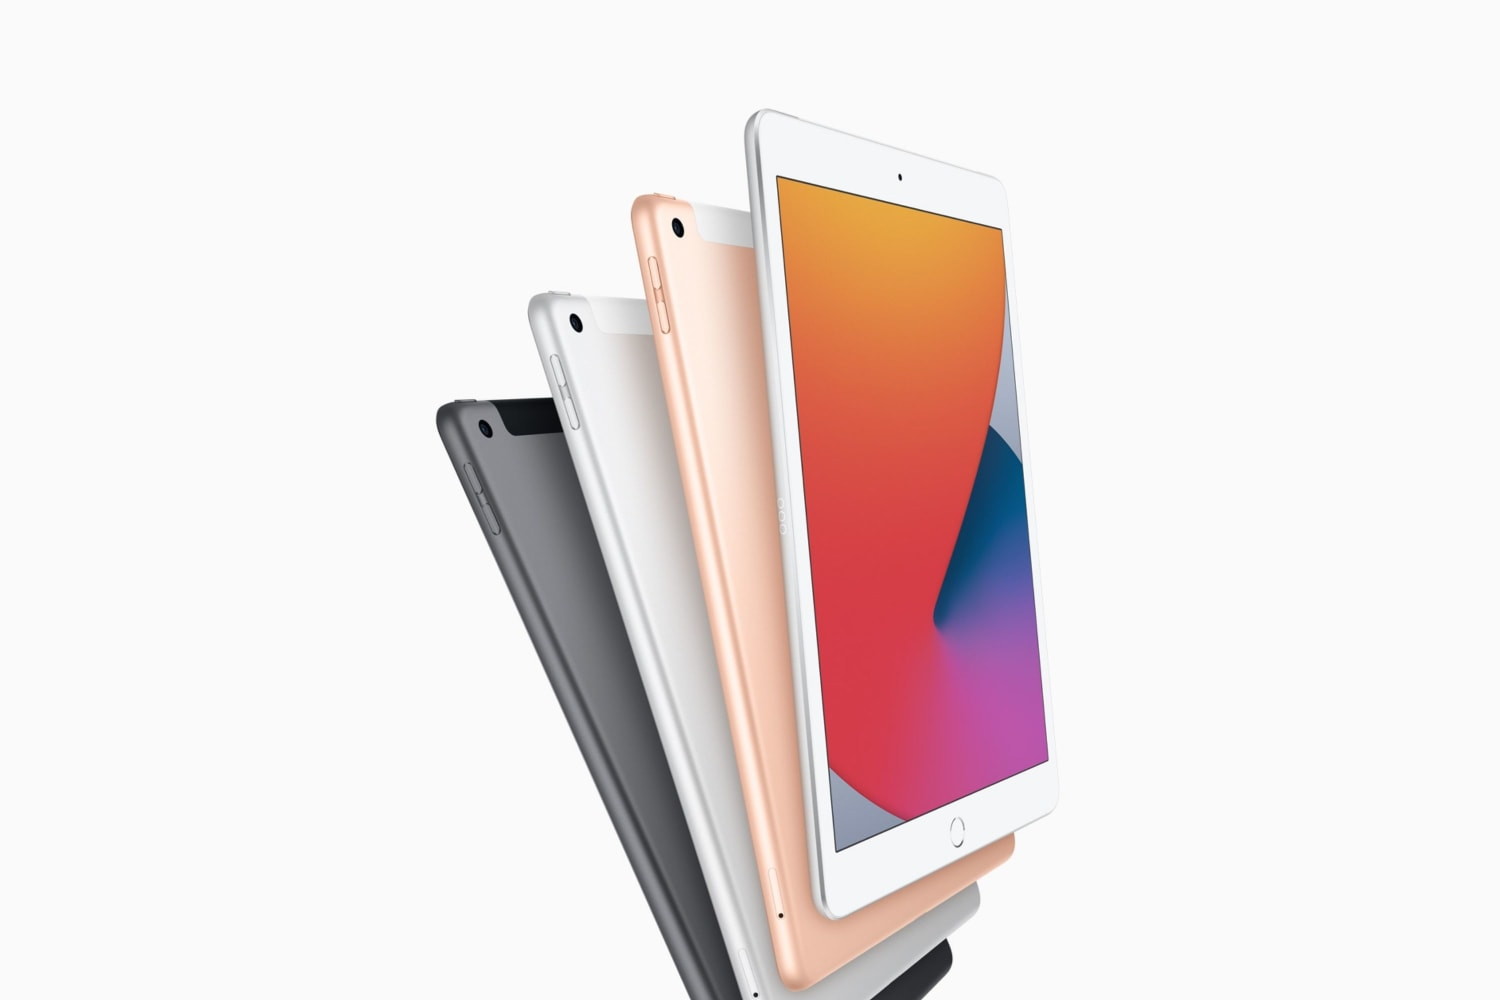 2020-ipad-8th-gen-uses-upgraded-a12-bionic-chip-with-more-keyboard-compatibility-options-20200915-1